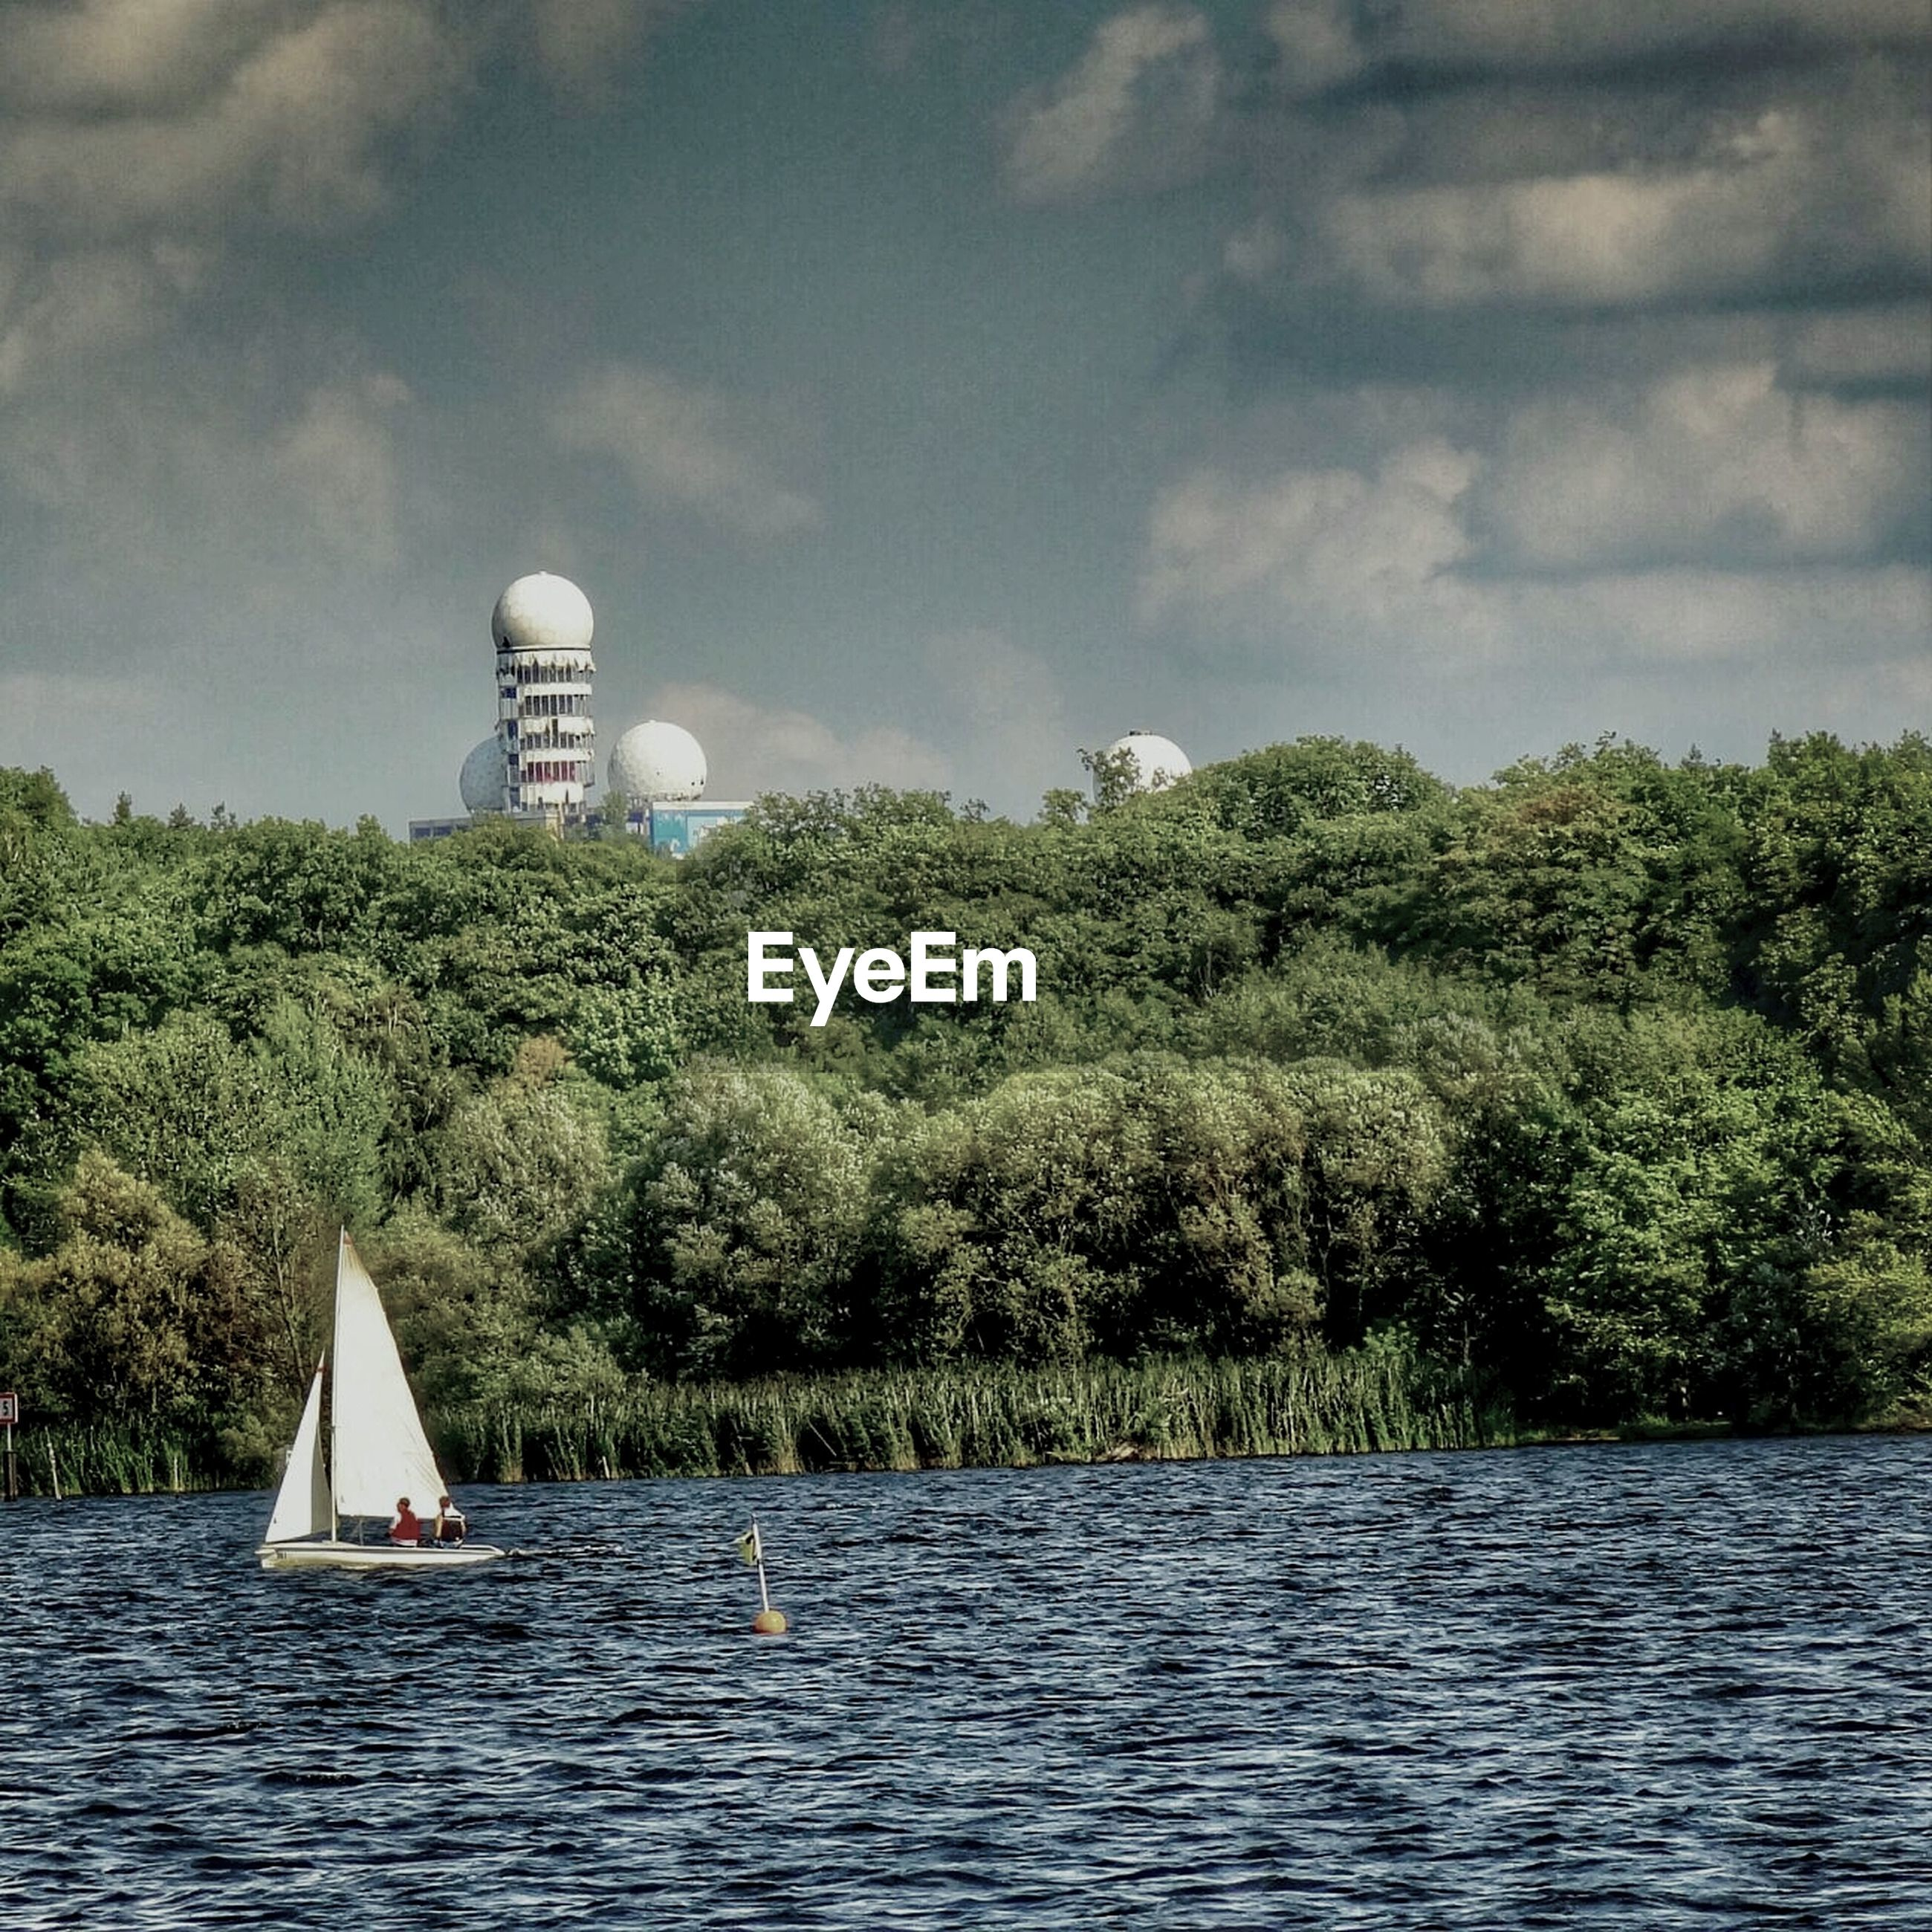 Sailboat sailing on lake and nsa listening station on teufelsberg against cloudy sky